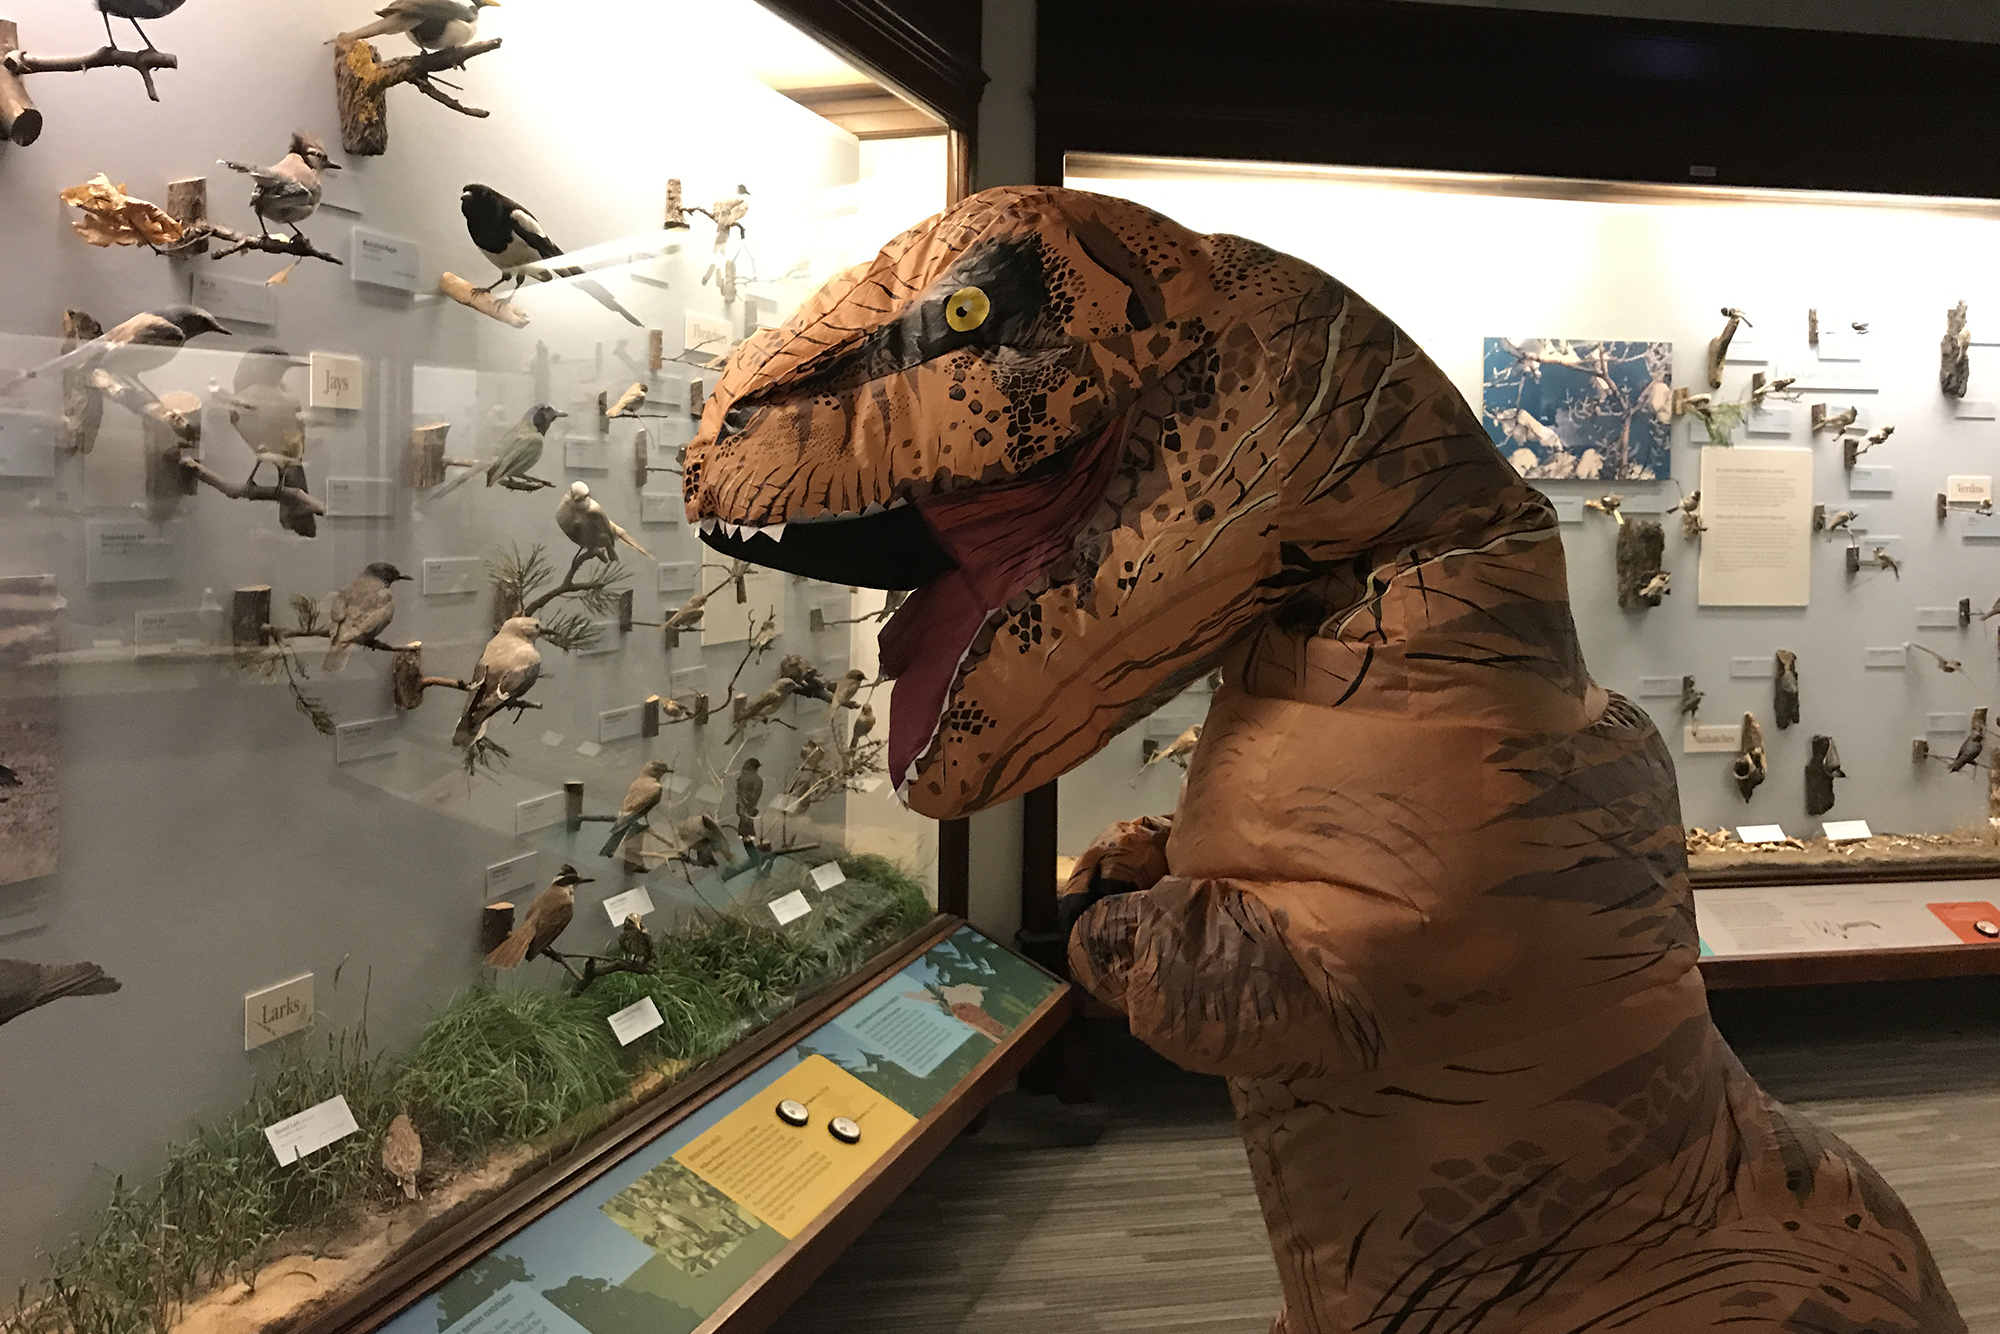 A person wearing an inflatible T. rex costume stands in front of a case containing an array of taxidermy birds.